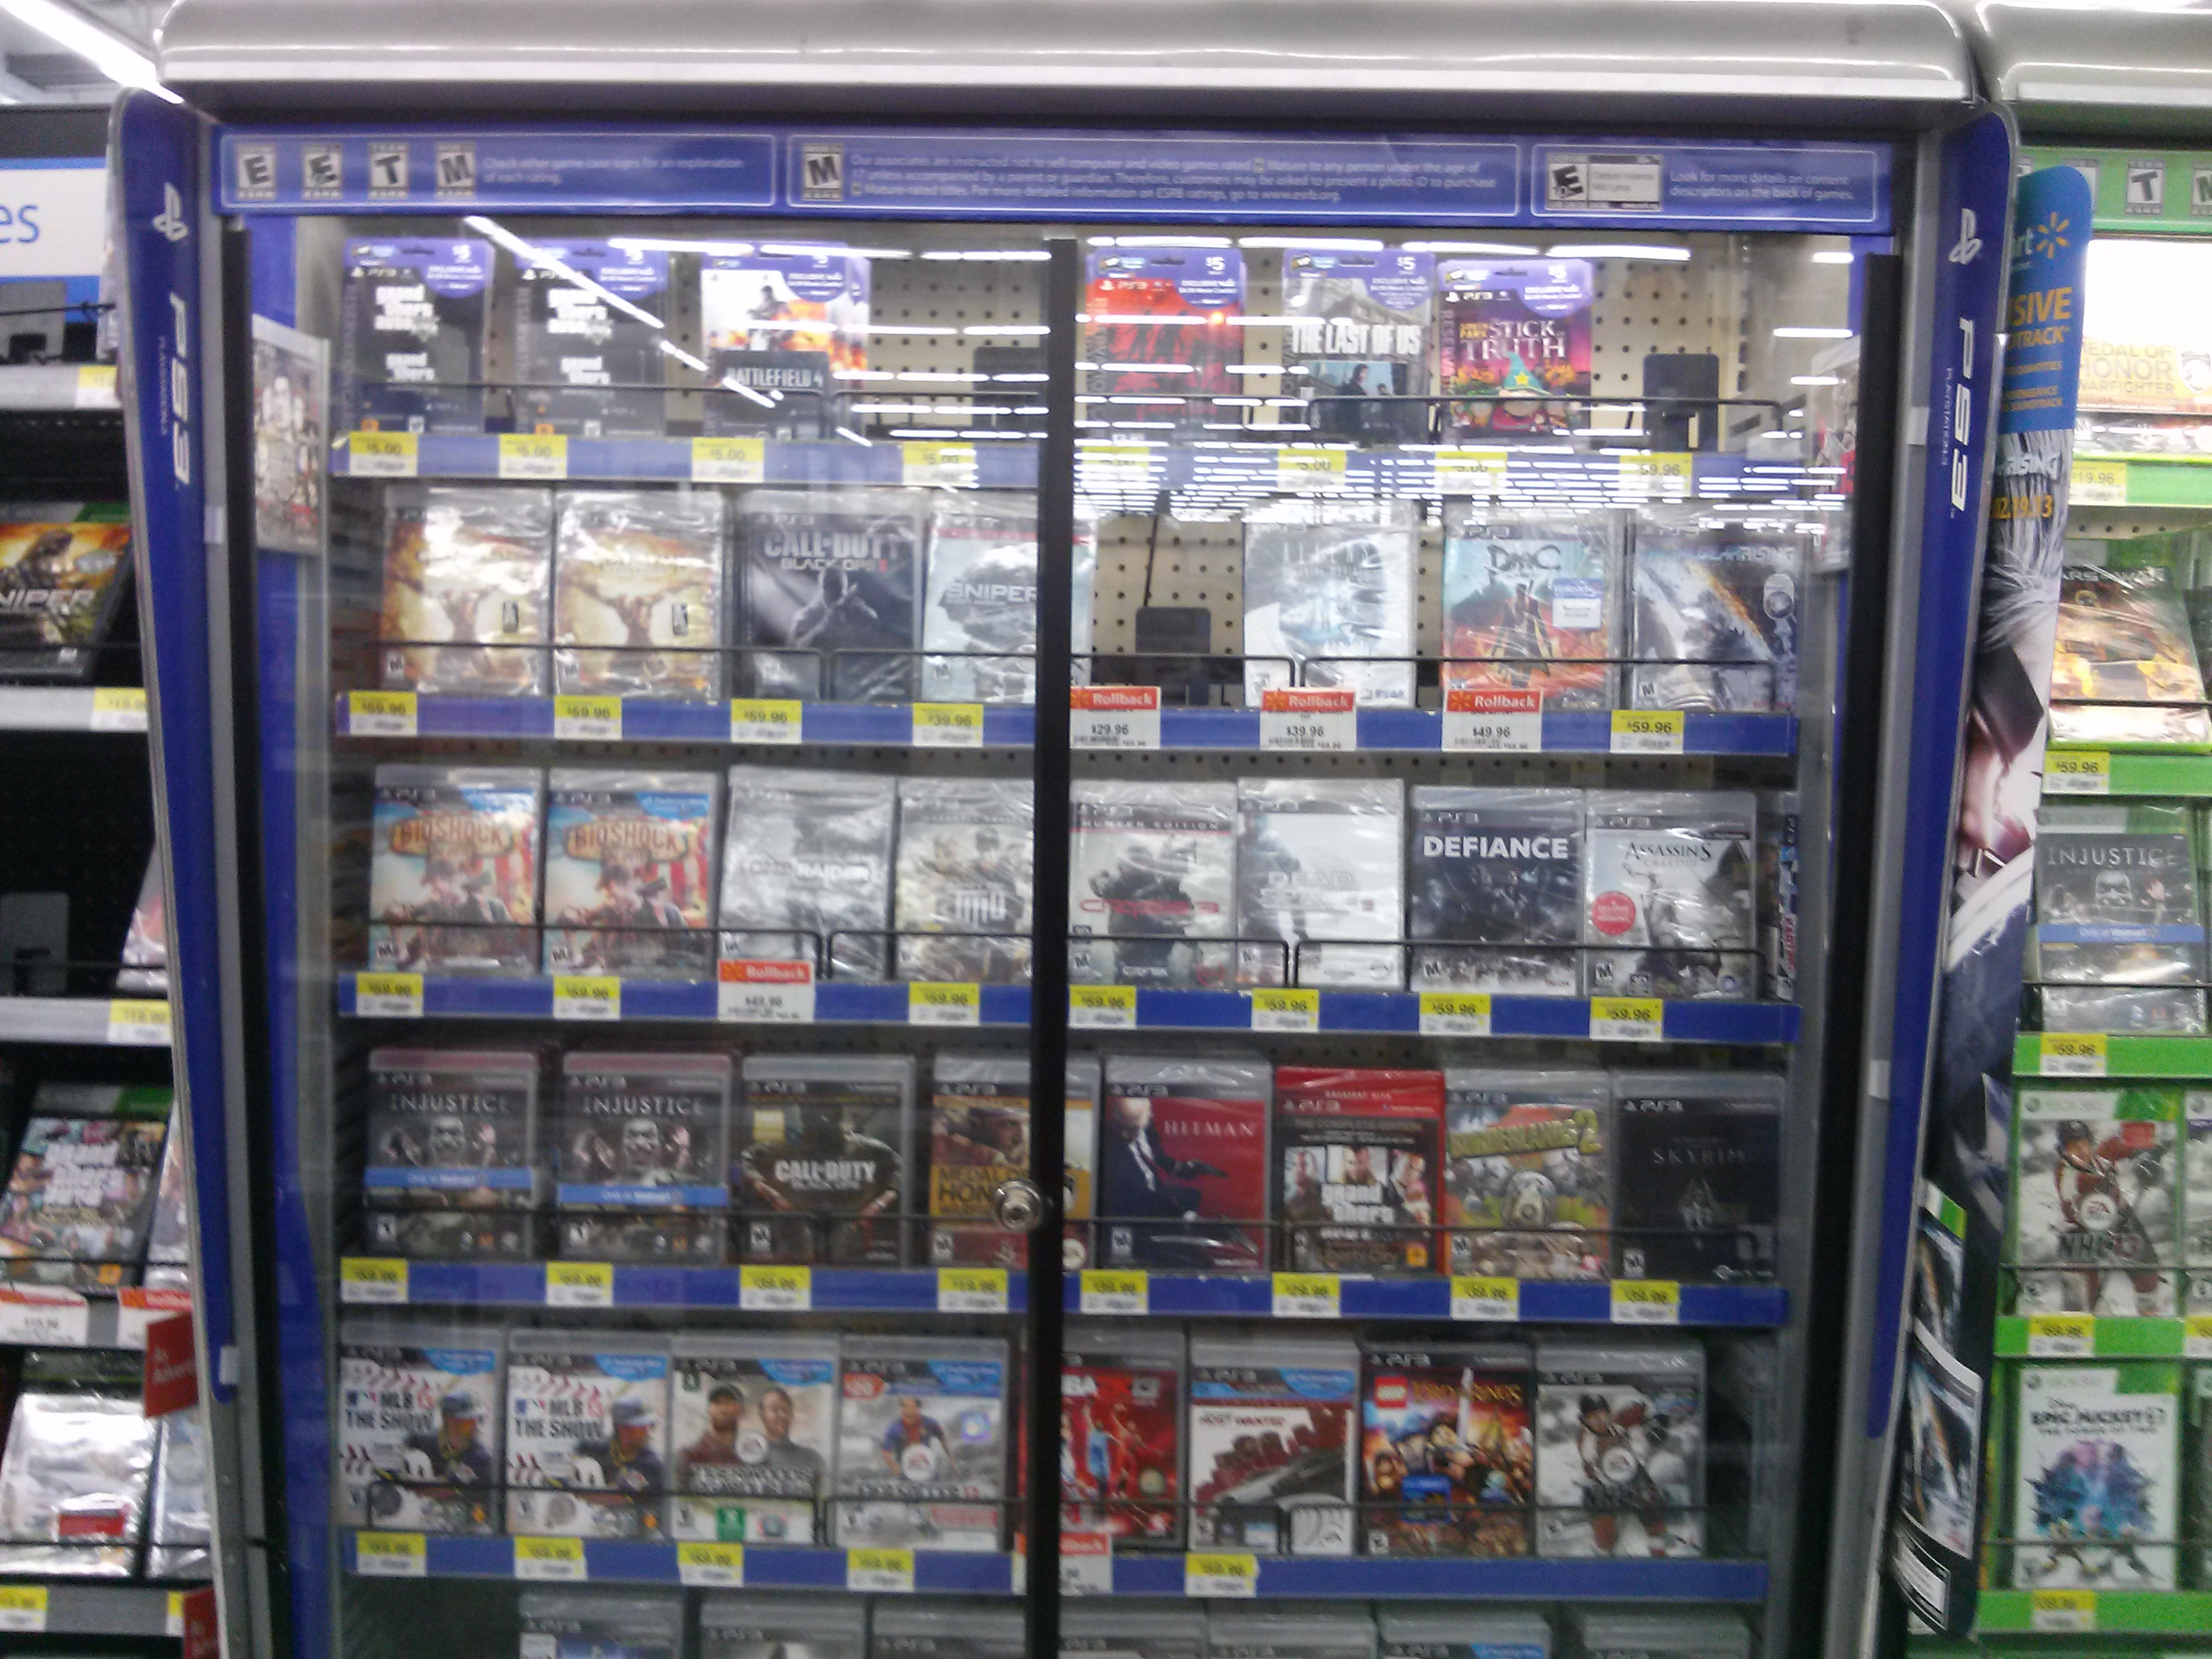 Browse our huge selection of PS4 video games including the most popular Playstation 4 games out today and on pre-order!